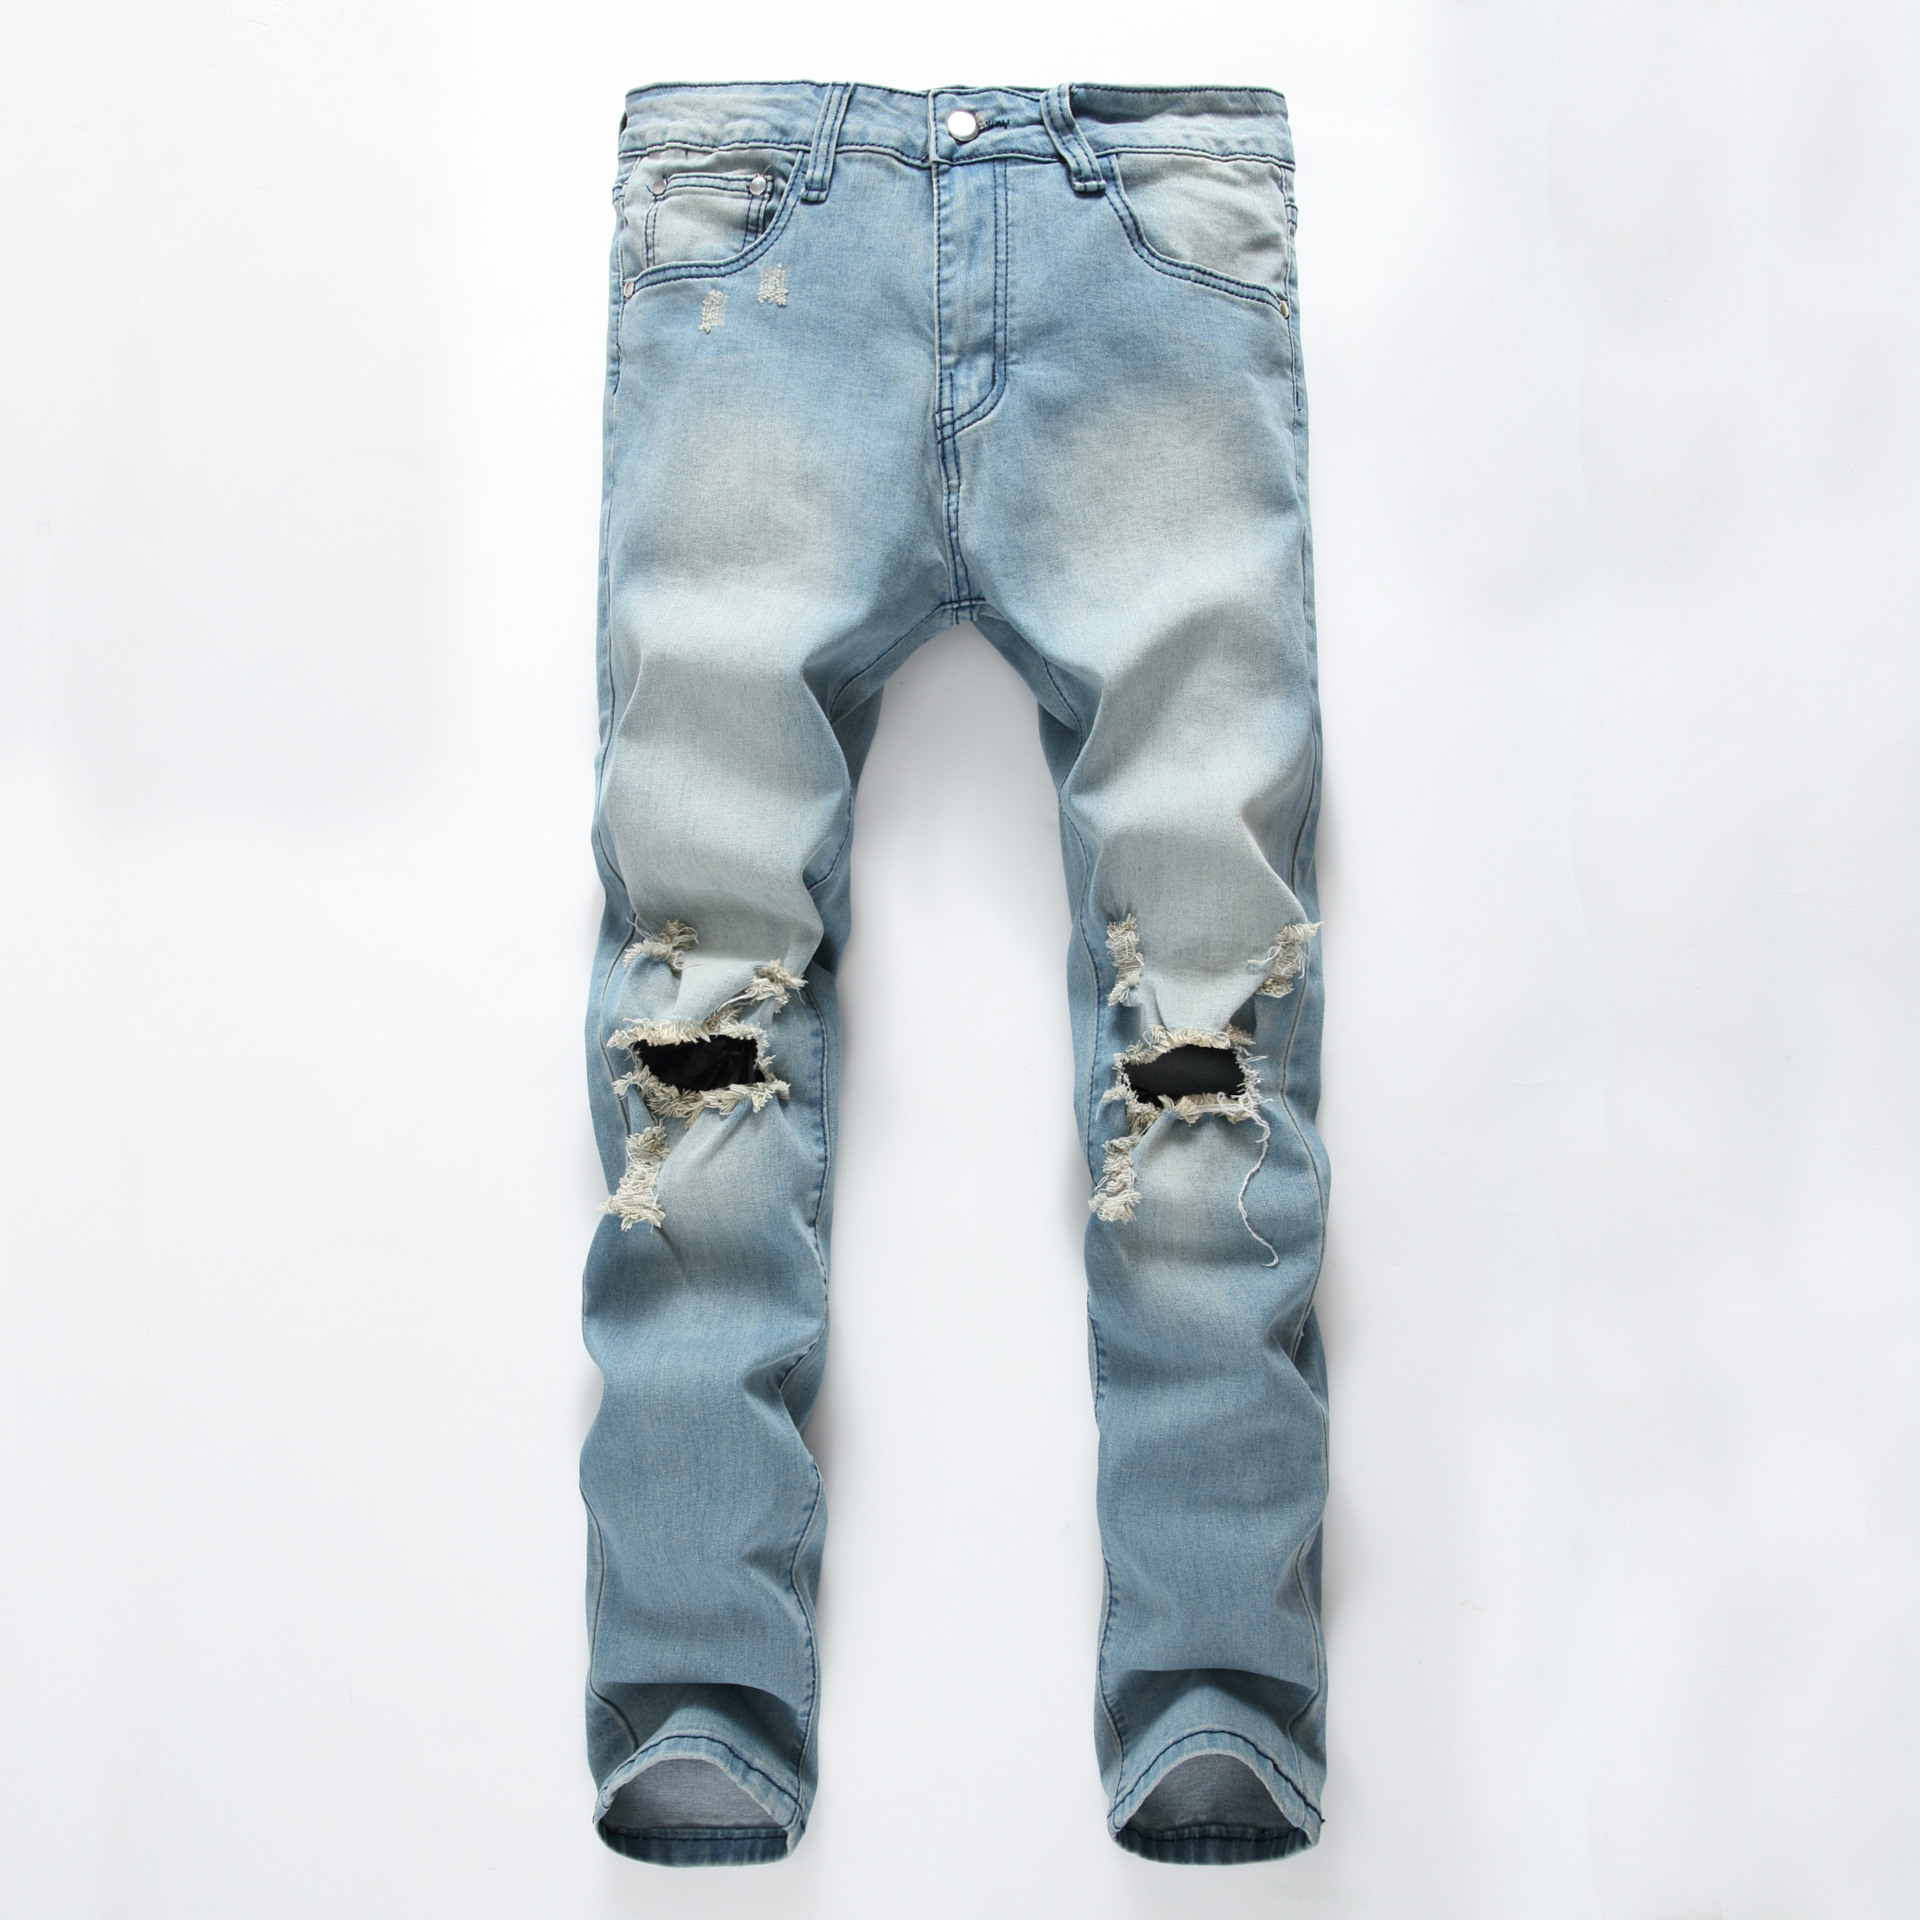 ФОТО 2016 New Arrival Distressed Jeans Men Ripped Jeans Famous Brand Clothing Light Blue Colour With Big Holes Kanye West Jeans